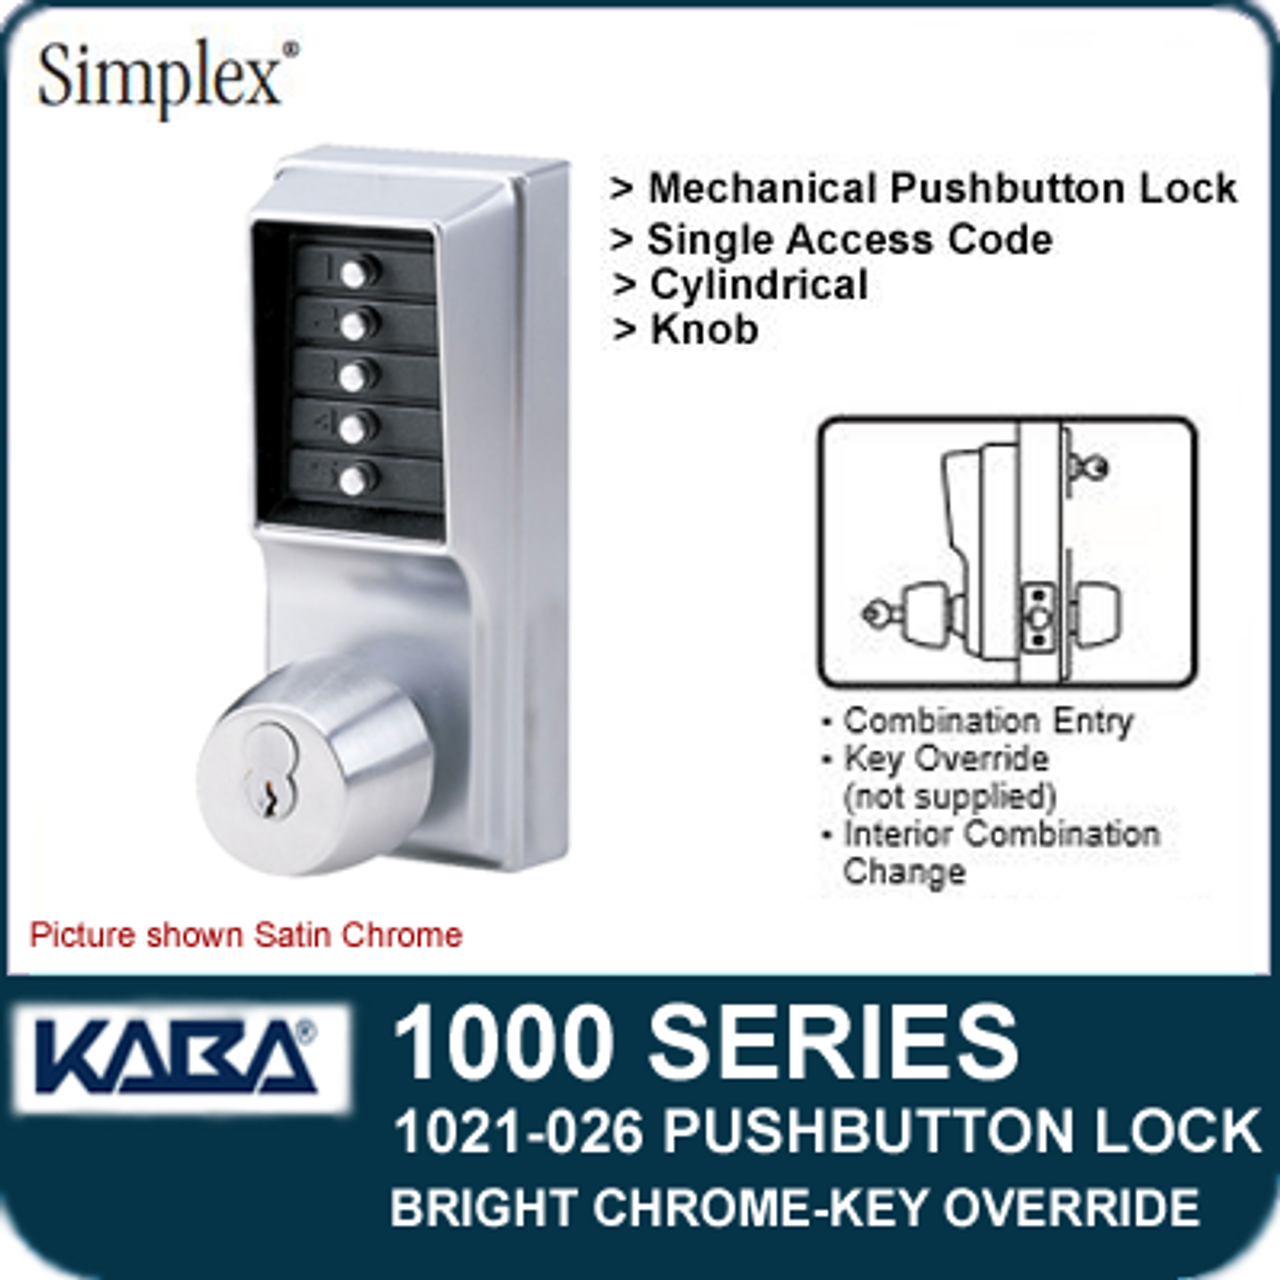 I//C Best and Equivalents Satin Chrome Finish 6 or 7 Pin Length Kaba Simplex LP1000 Series Metal Mechanical Pushbutton Exit Trim Lock with Lever Left Hand Kaba Ilco LLP1020B26D Core Not Included Combination Entry and Key Override